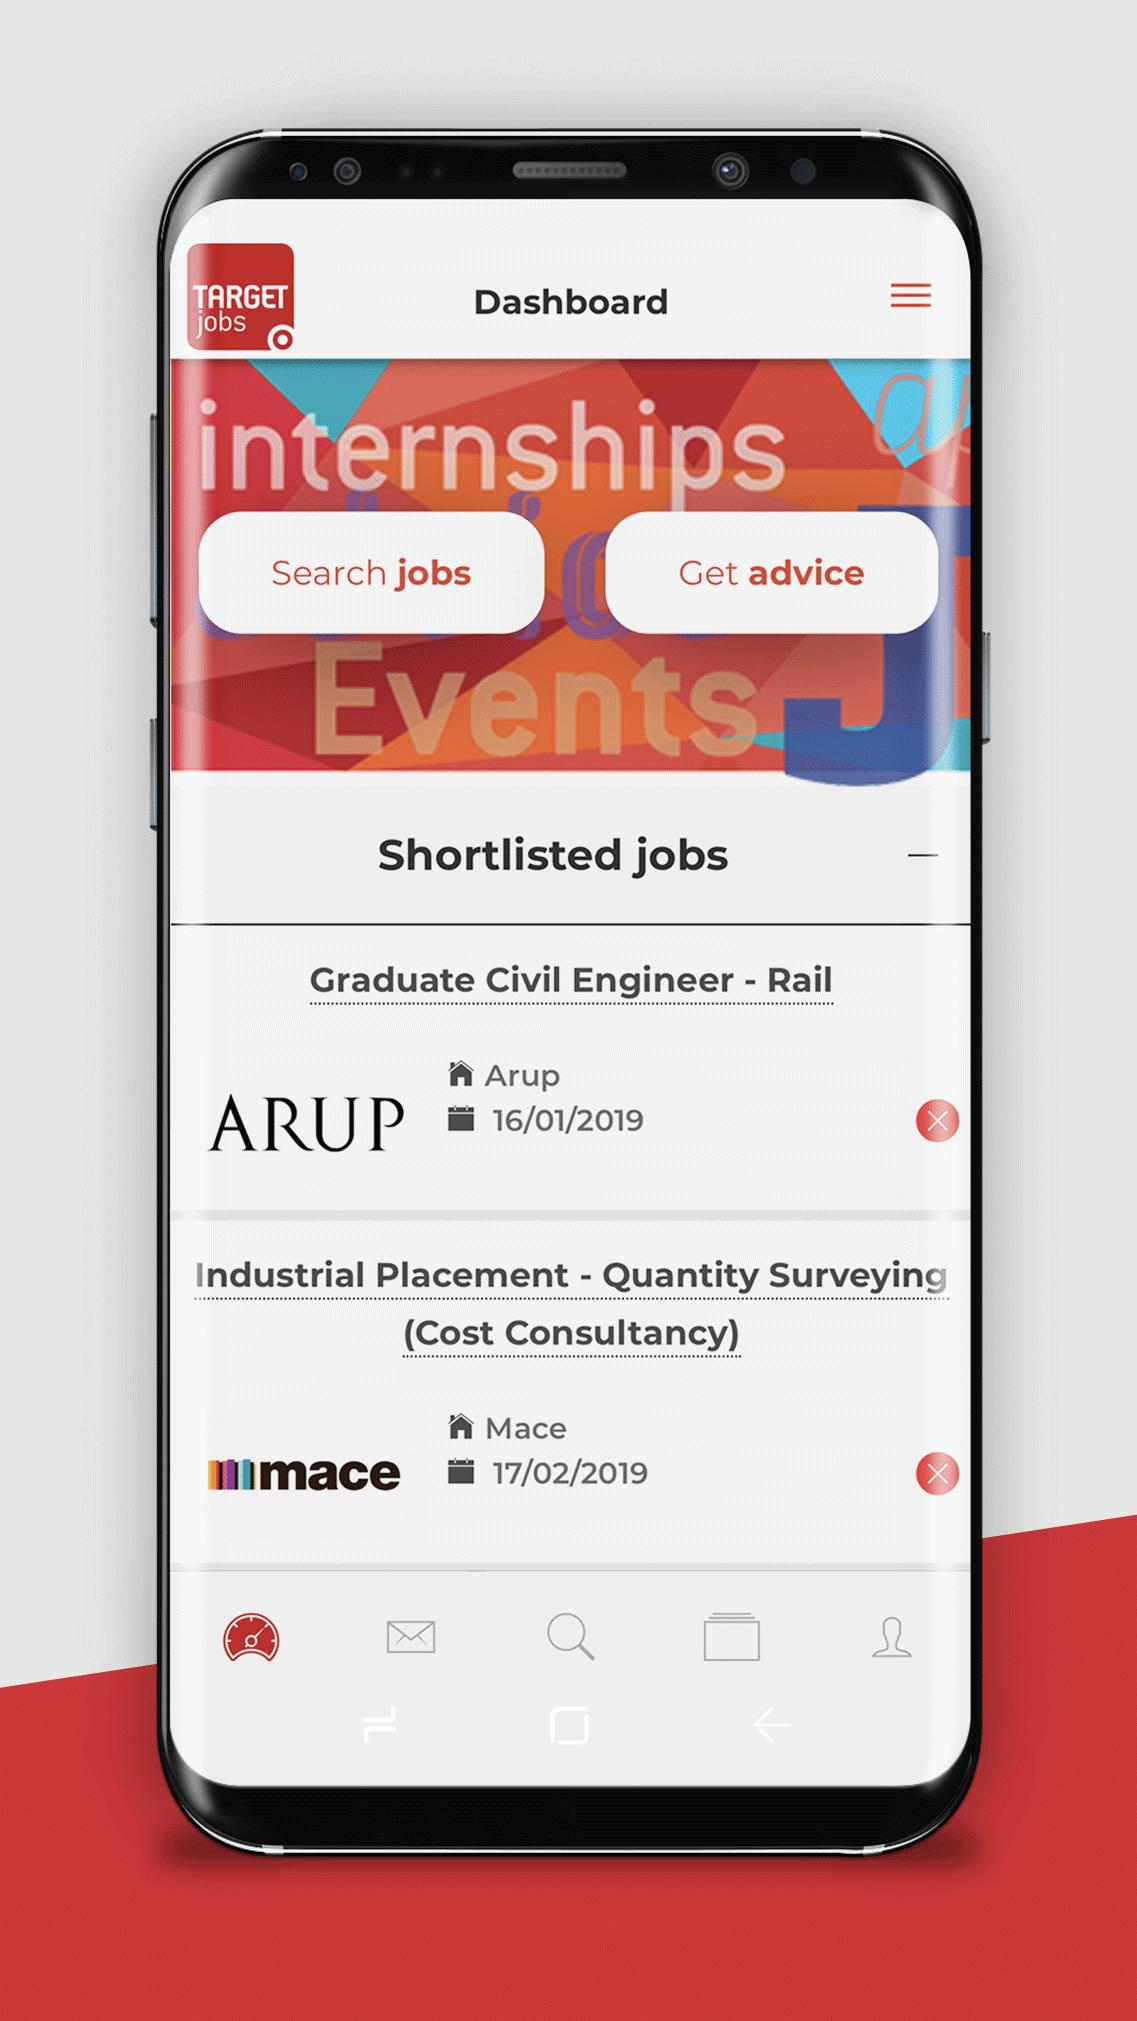 TARGETjobs for Android - APK Download